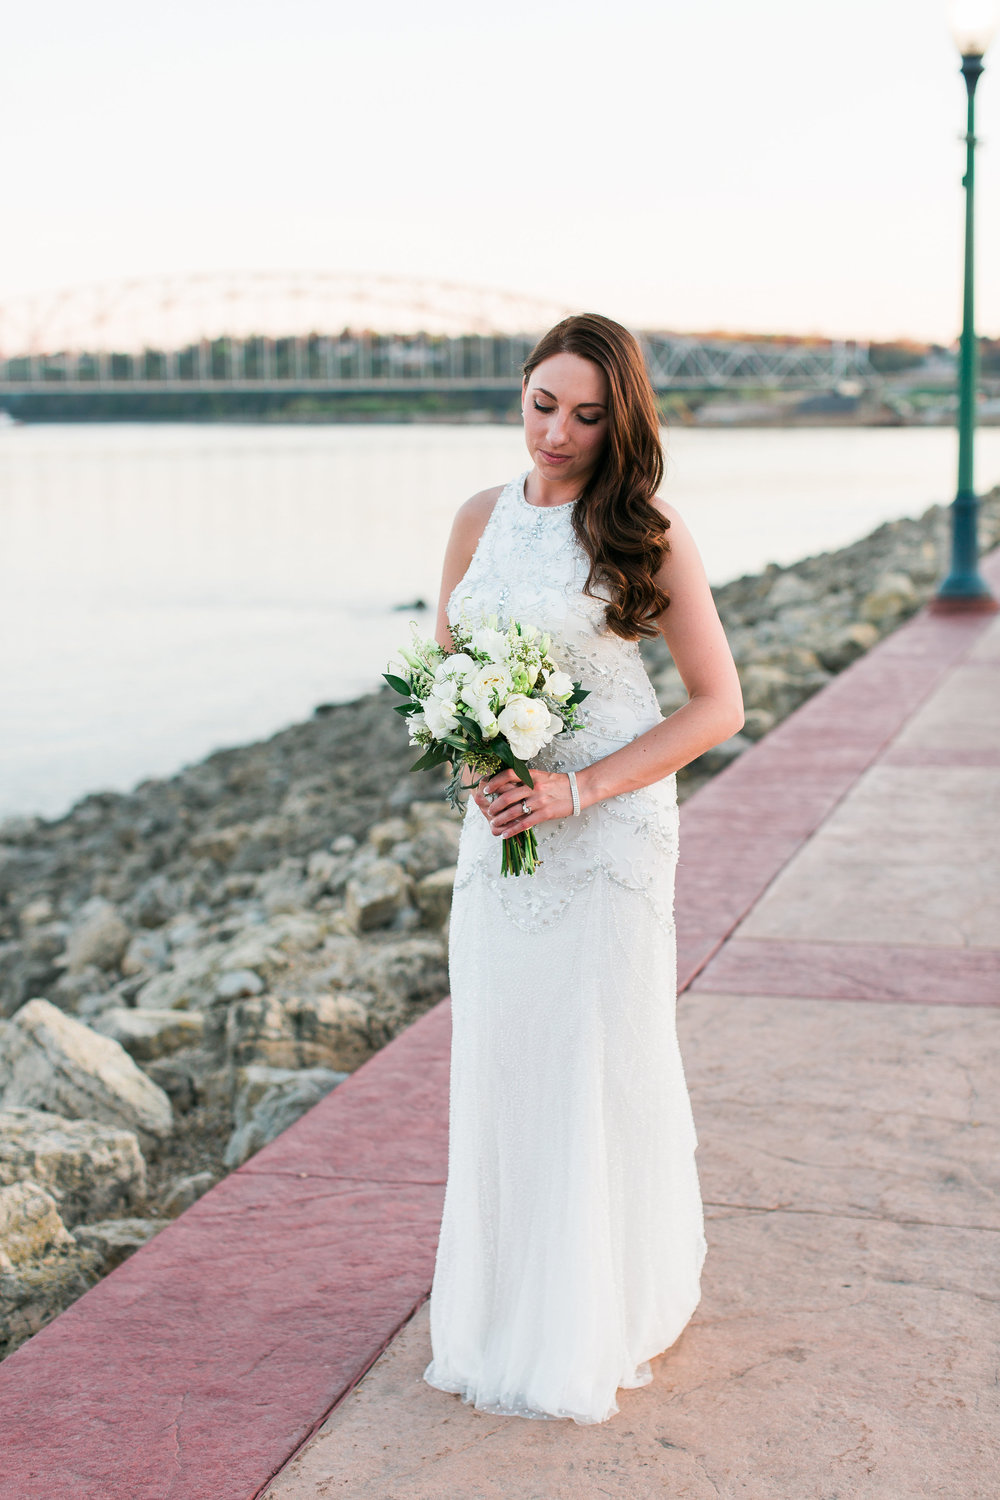 Bridal portrait of bride with beaded dress hair down along riverside in Dubuque Iowa wedding Minnesota wedding photography Mallory Kiesow Photography